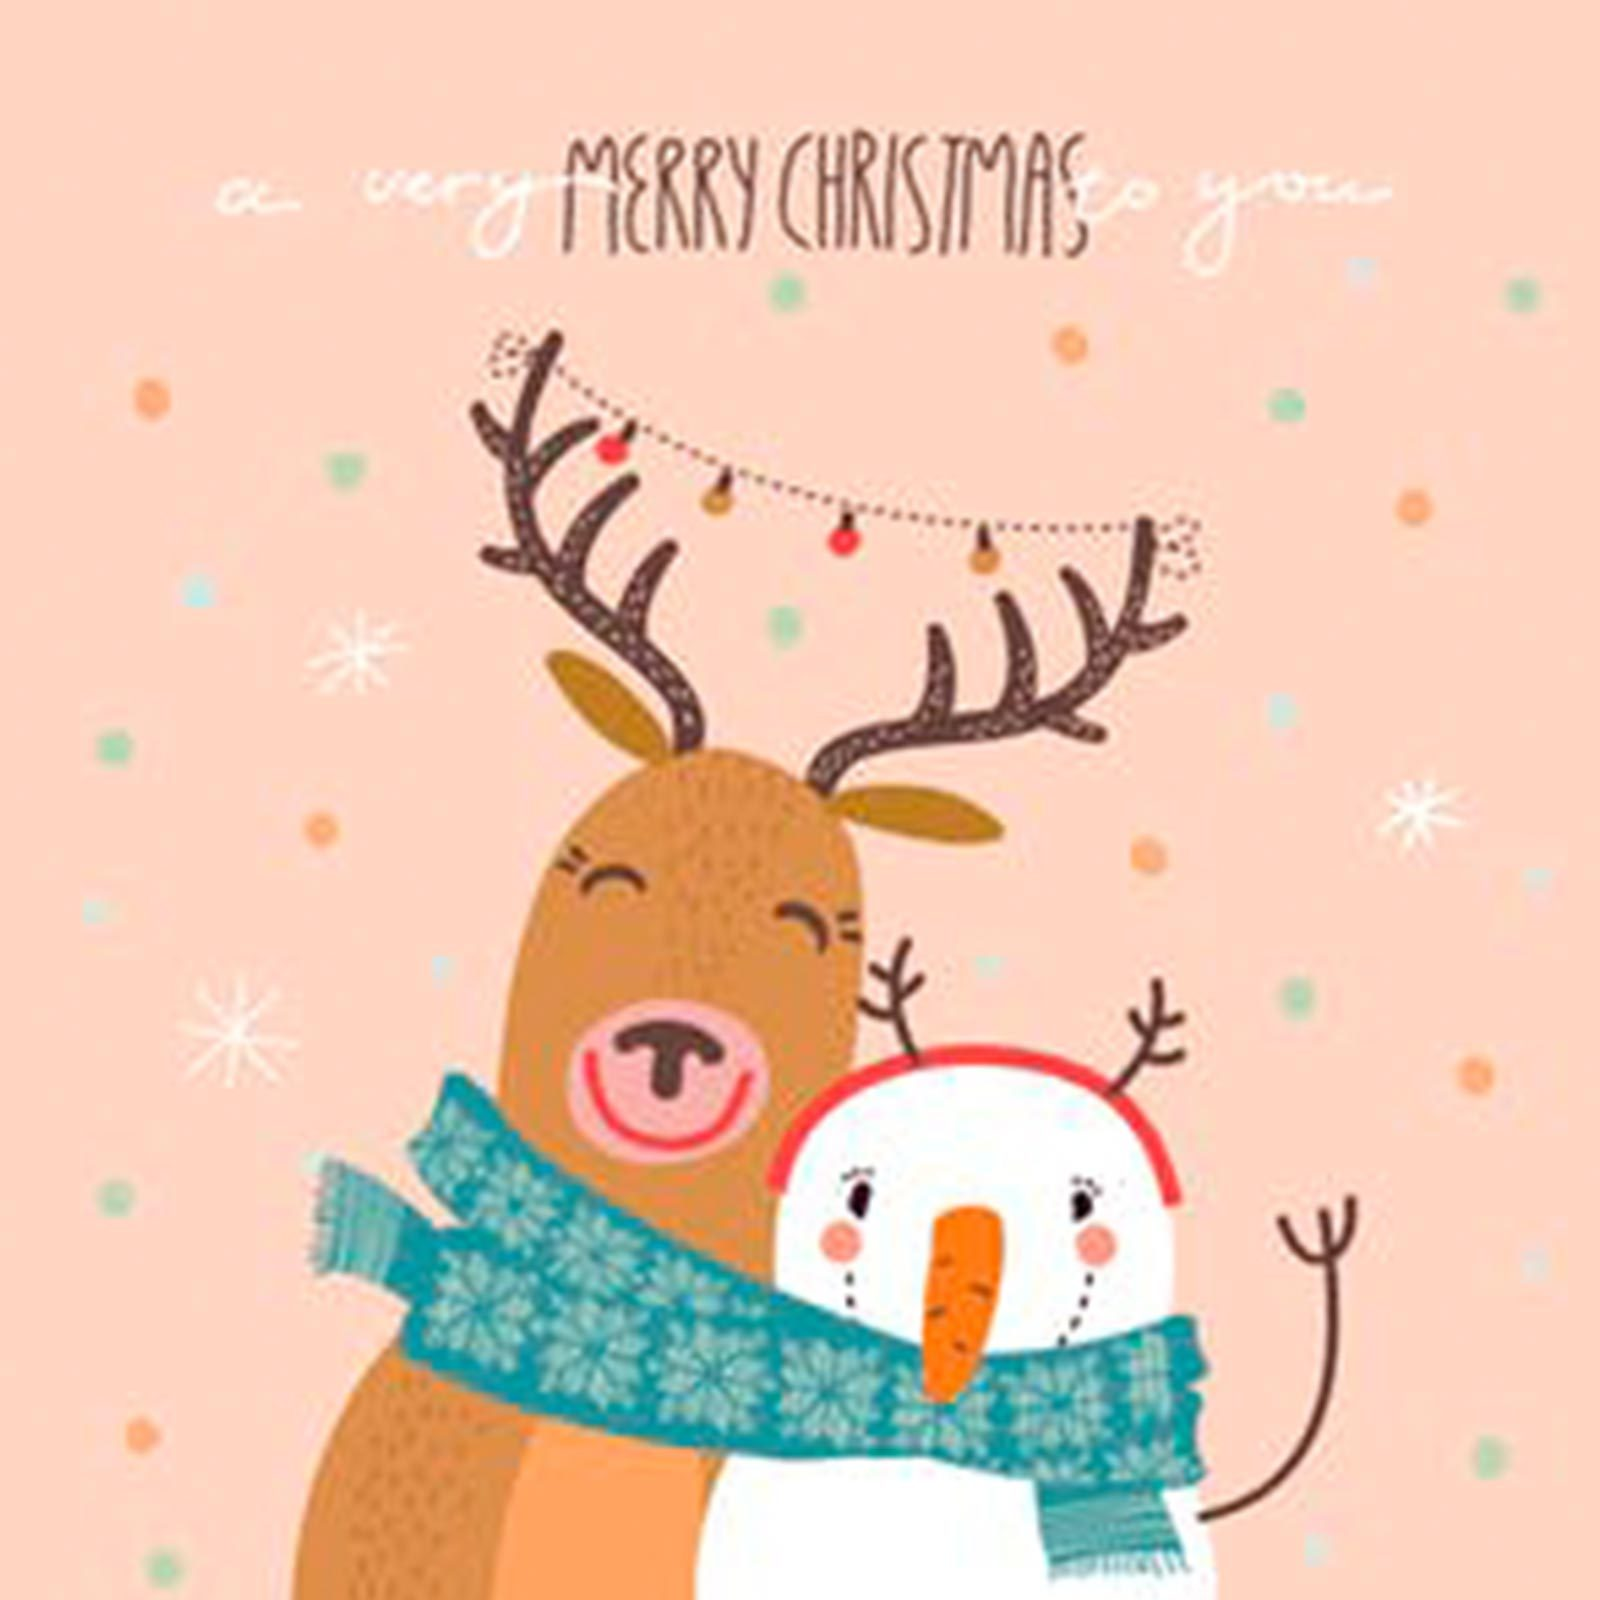 Reindeer Christmas Cards To Make.Free Christmas Cards To Print Out And Send This Year